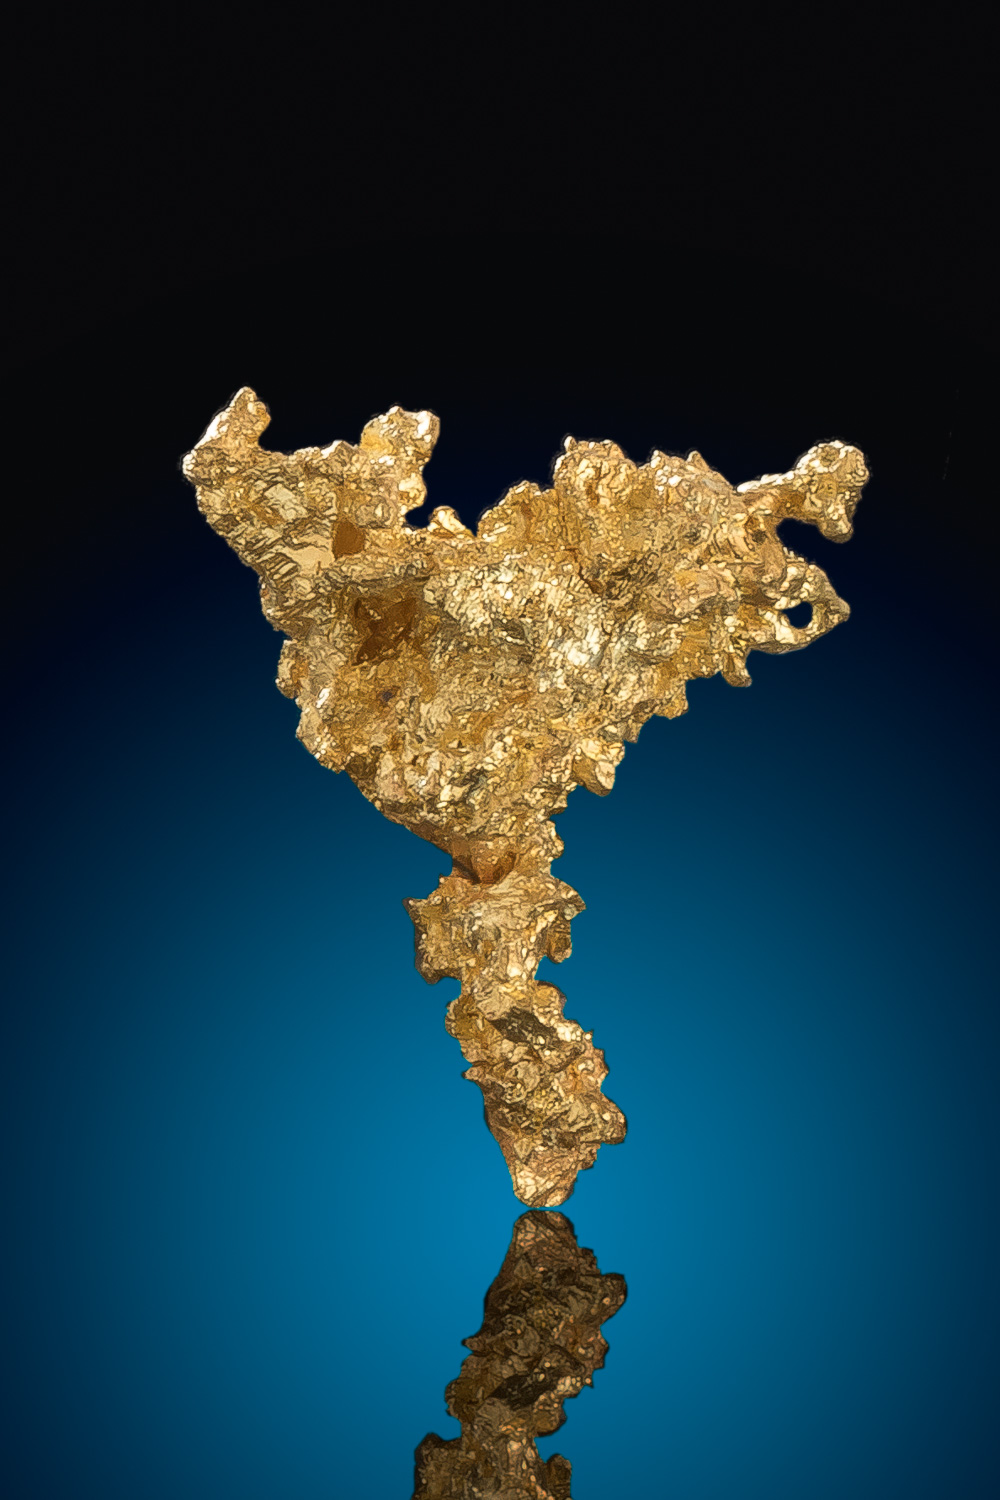 Triangular Crystalline Gold Nugget from the Eagles Nest Mine